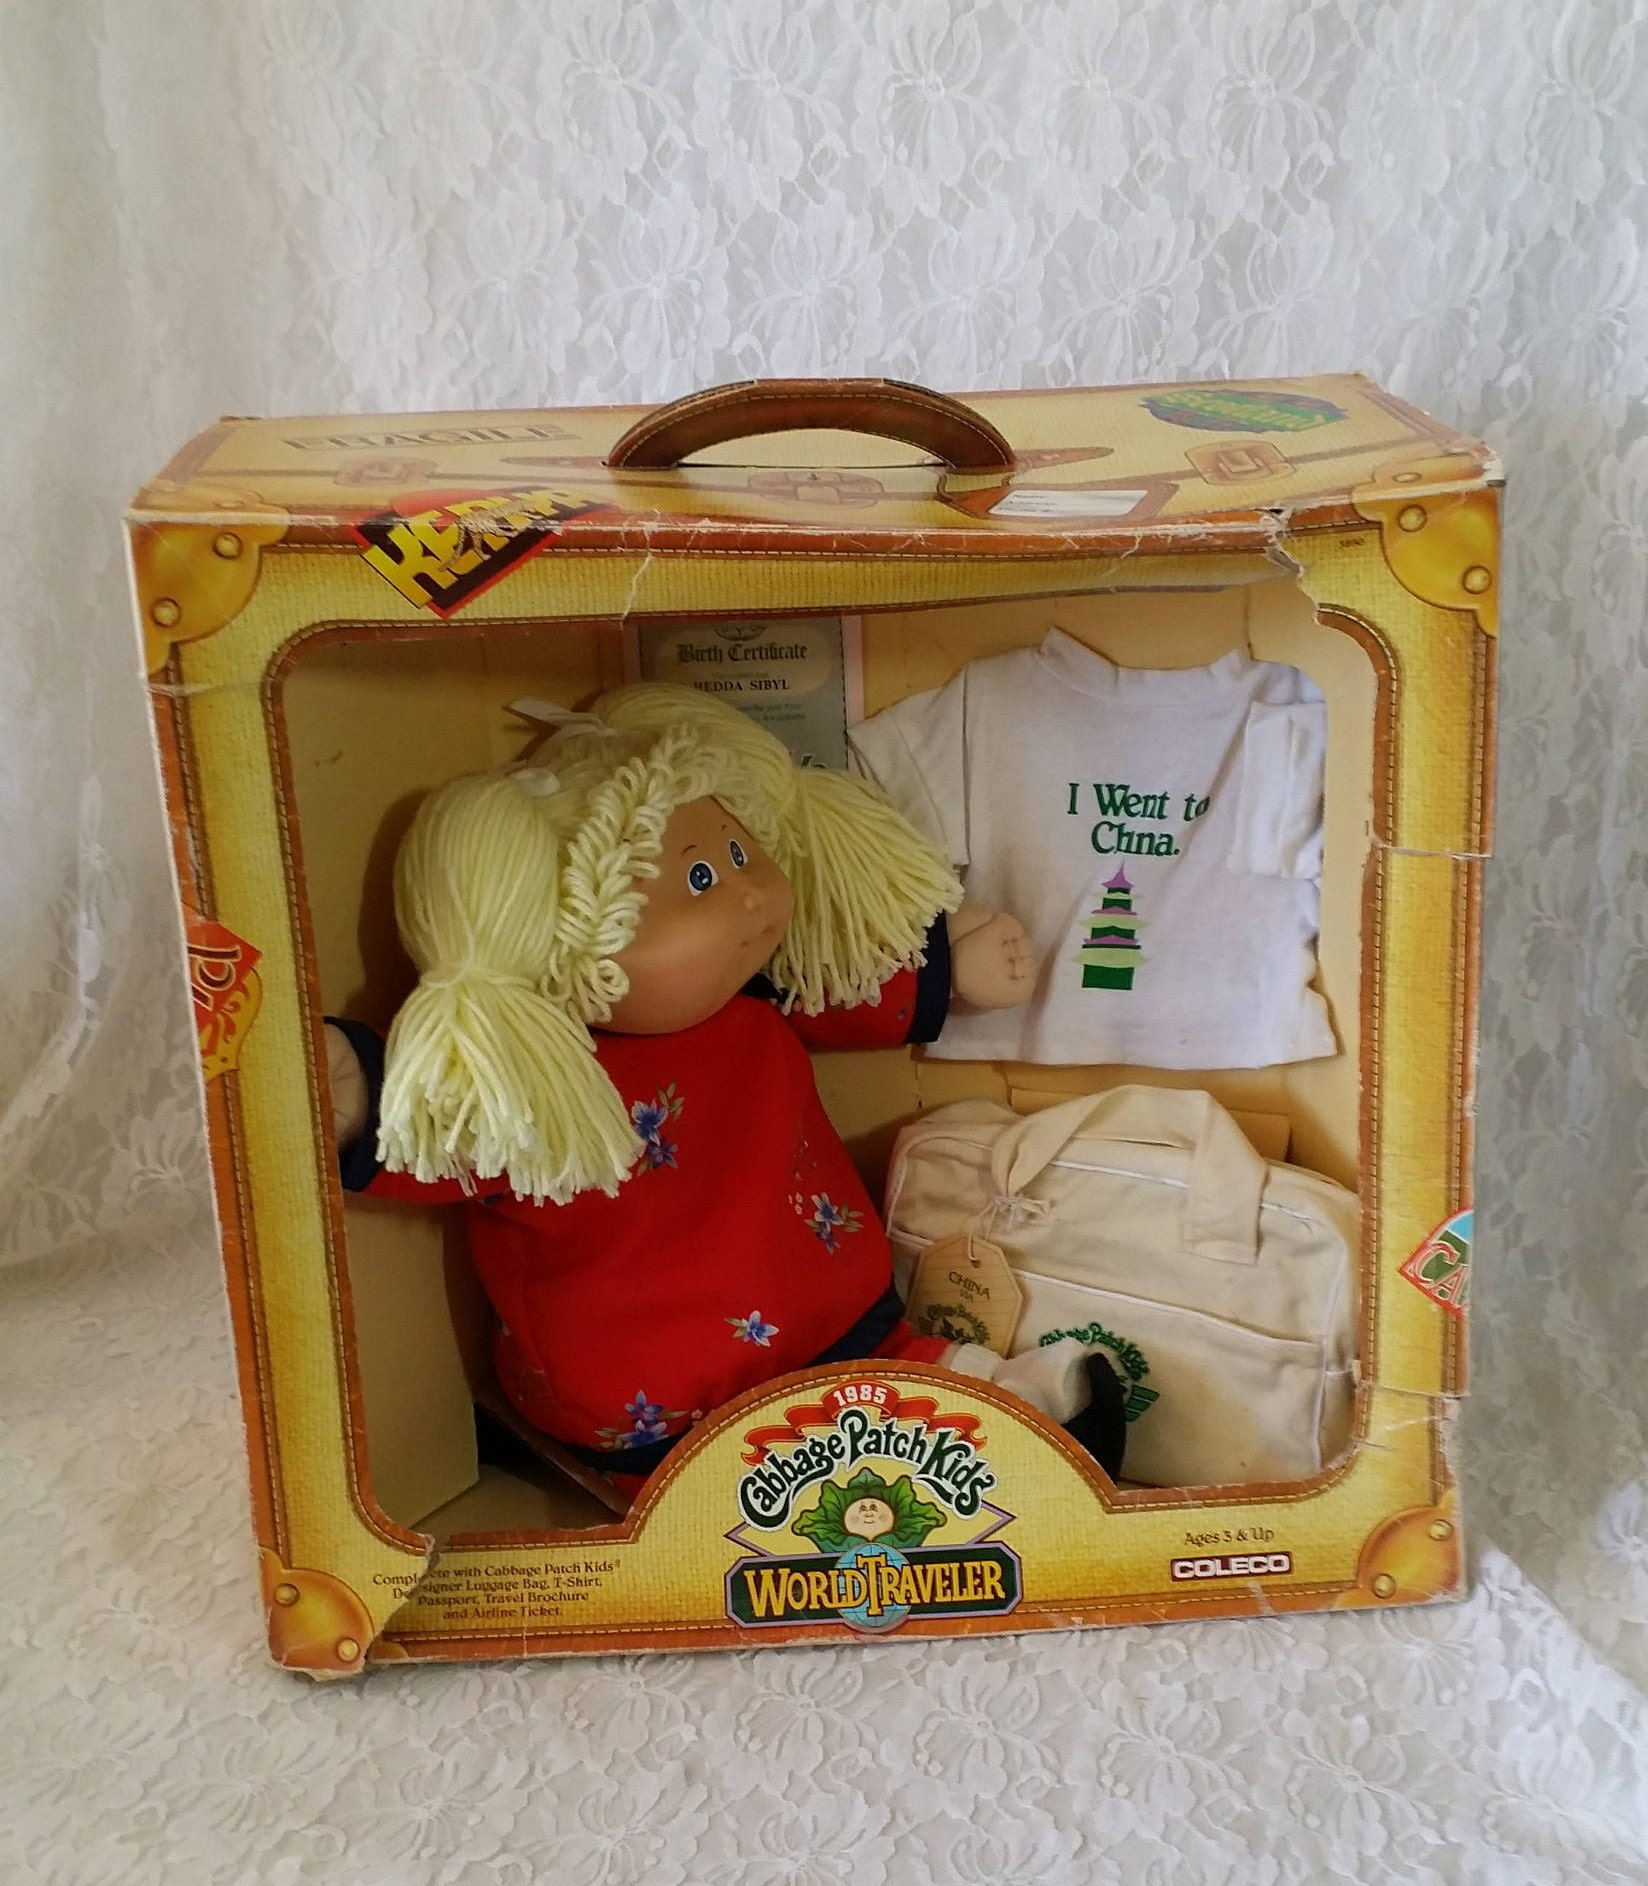 vintage doll 1985 cabbage patch kid world traveller china nrfb with unopened birth certificate